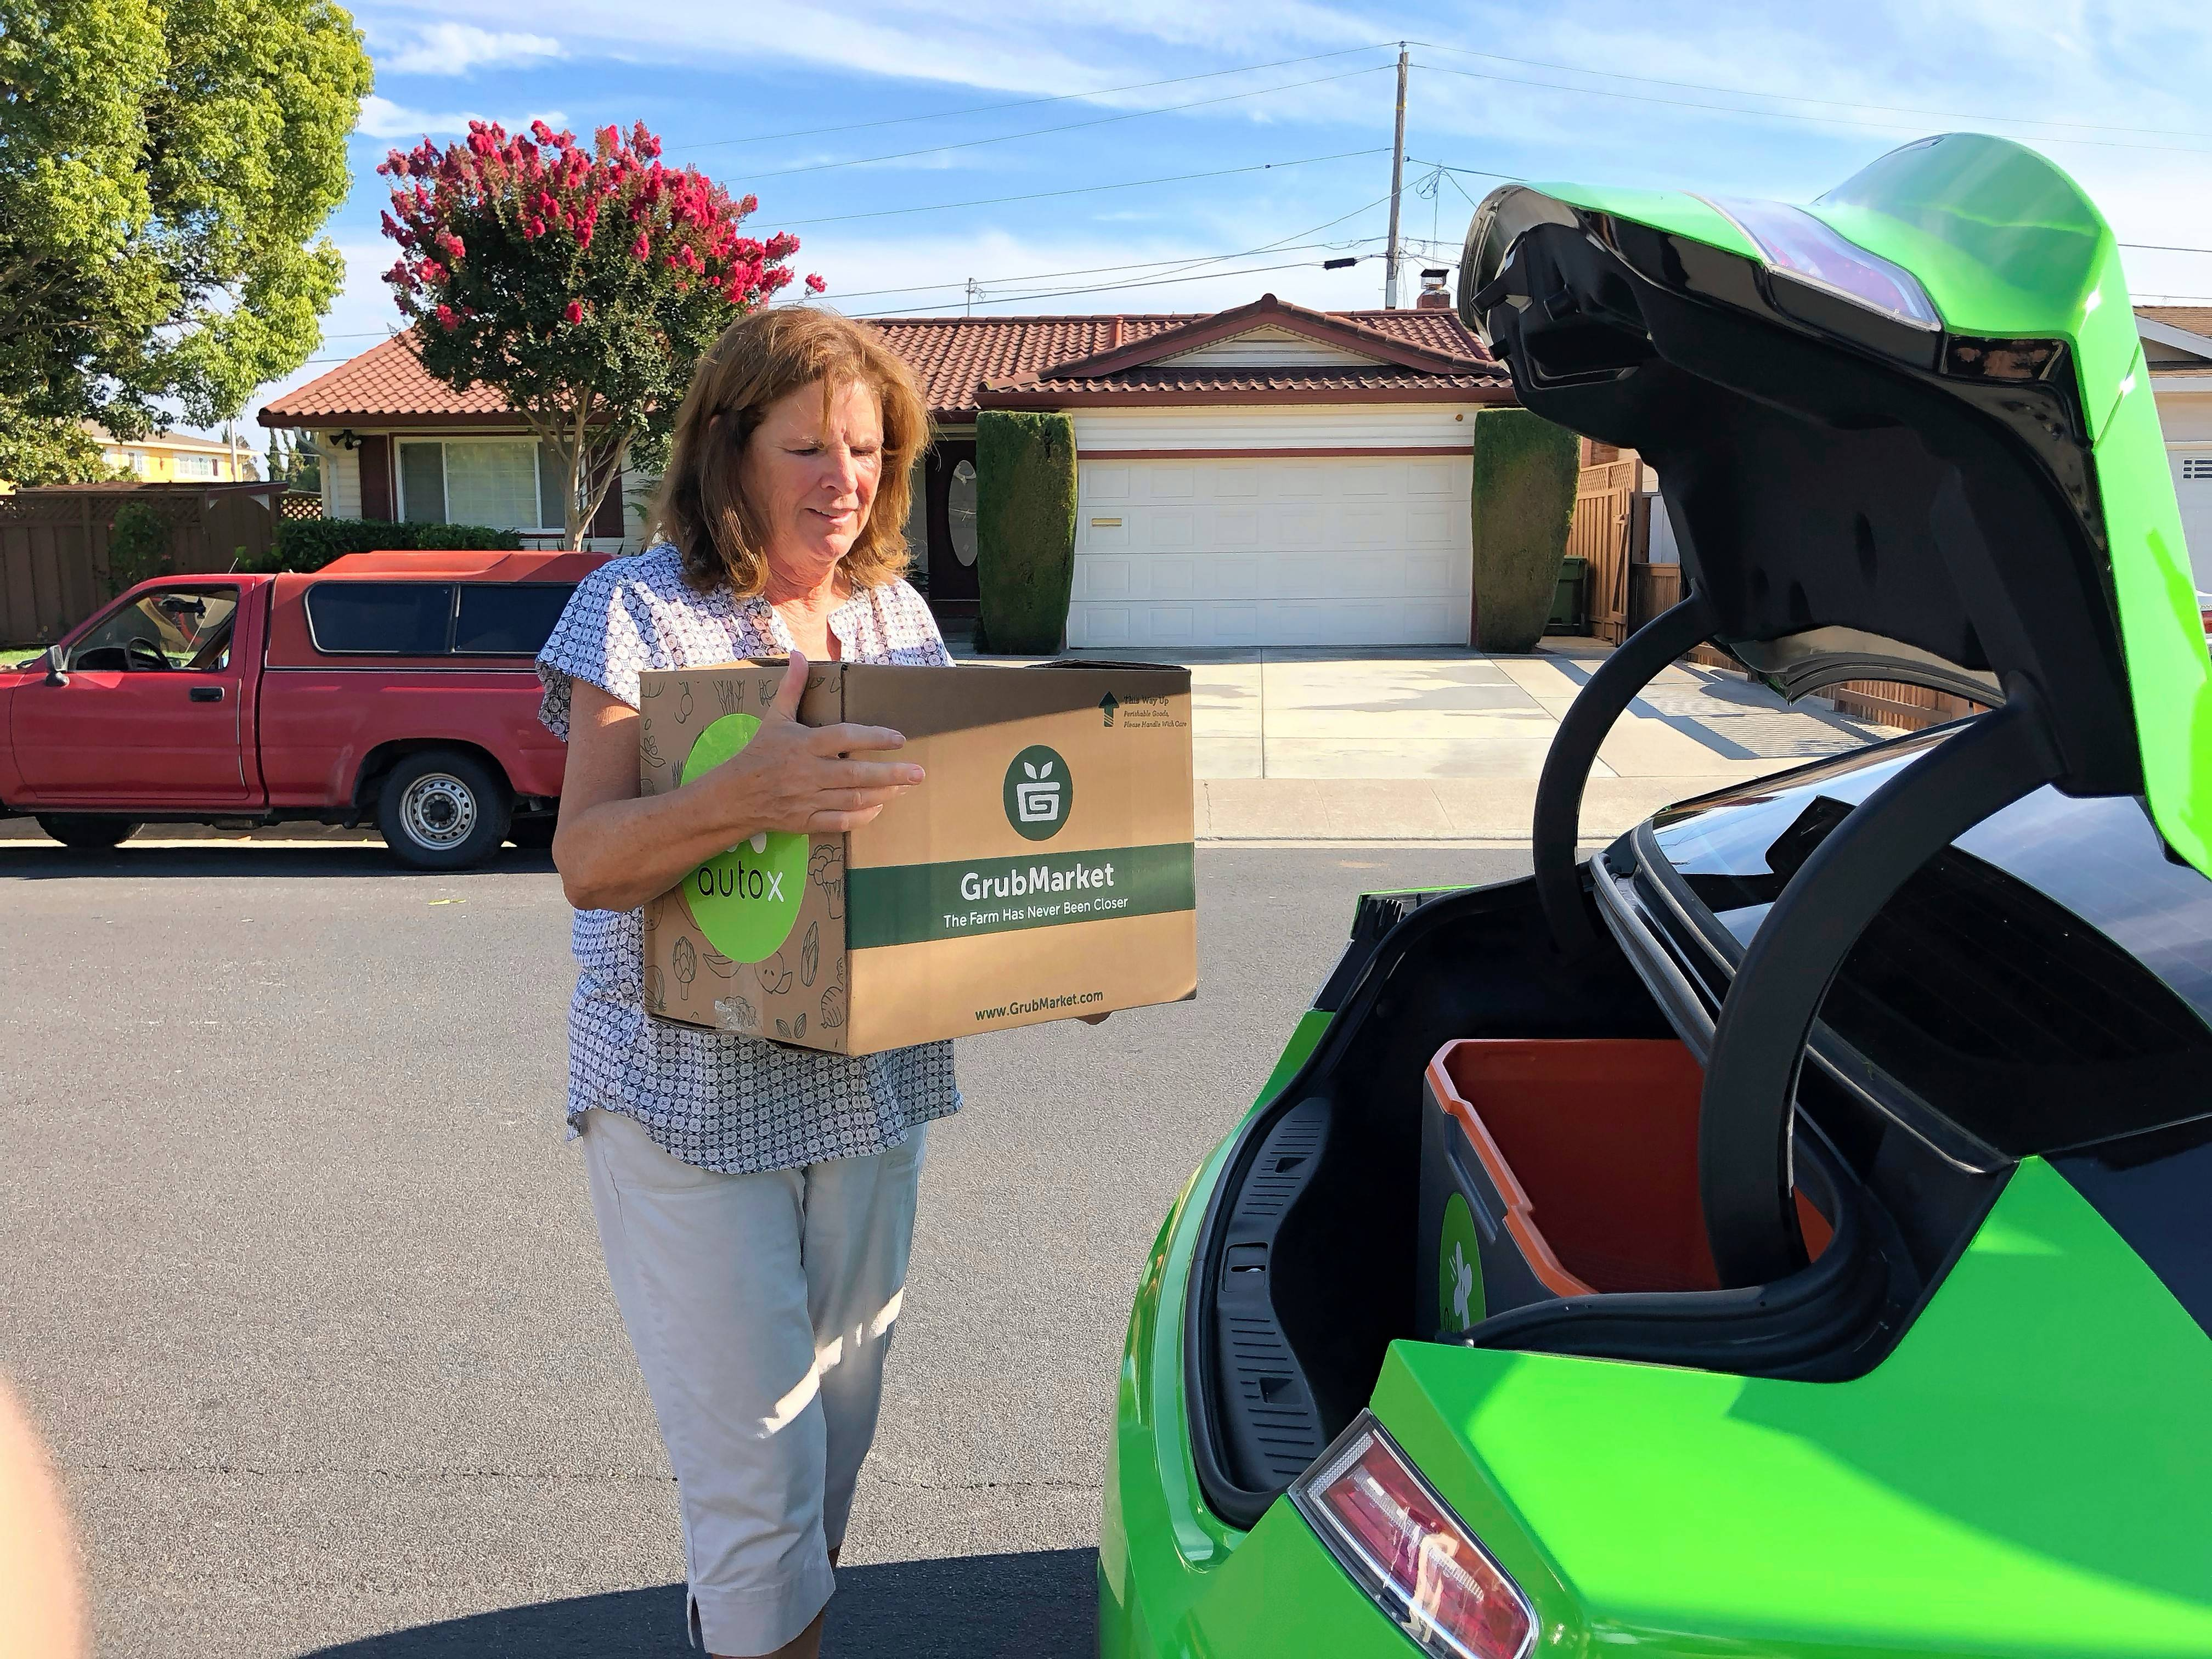 Blaskovich signed up to receive groceries from startup GrubMarket, which utilizes self-driving cars. An automated system will charge her for the add-on delivery later.